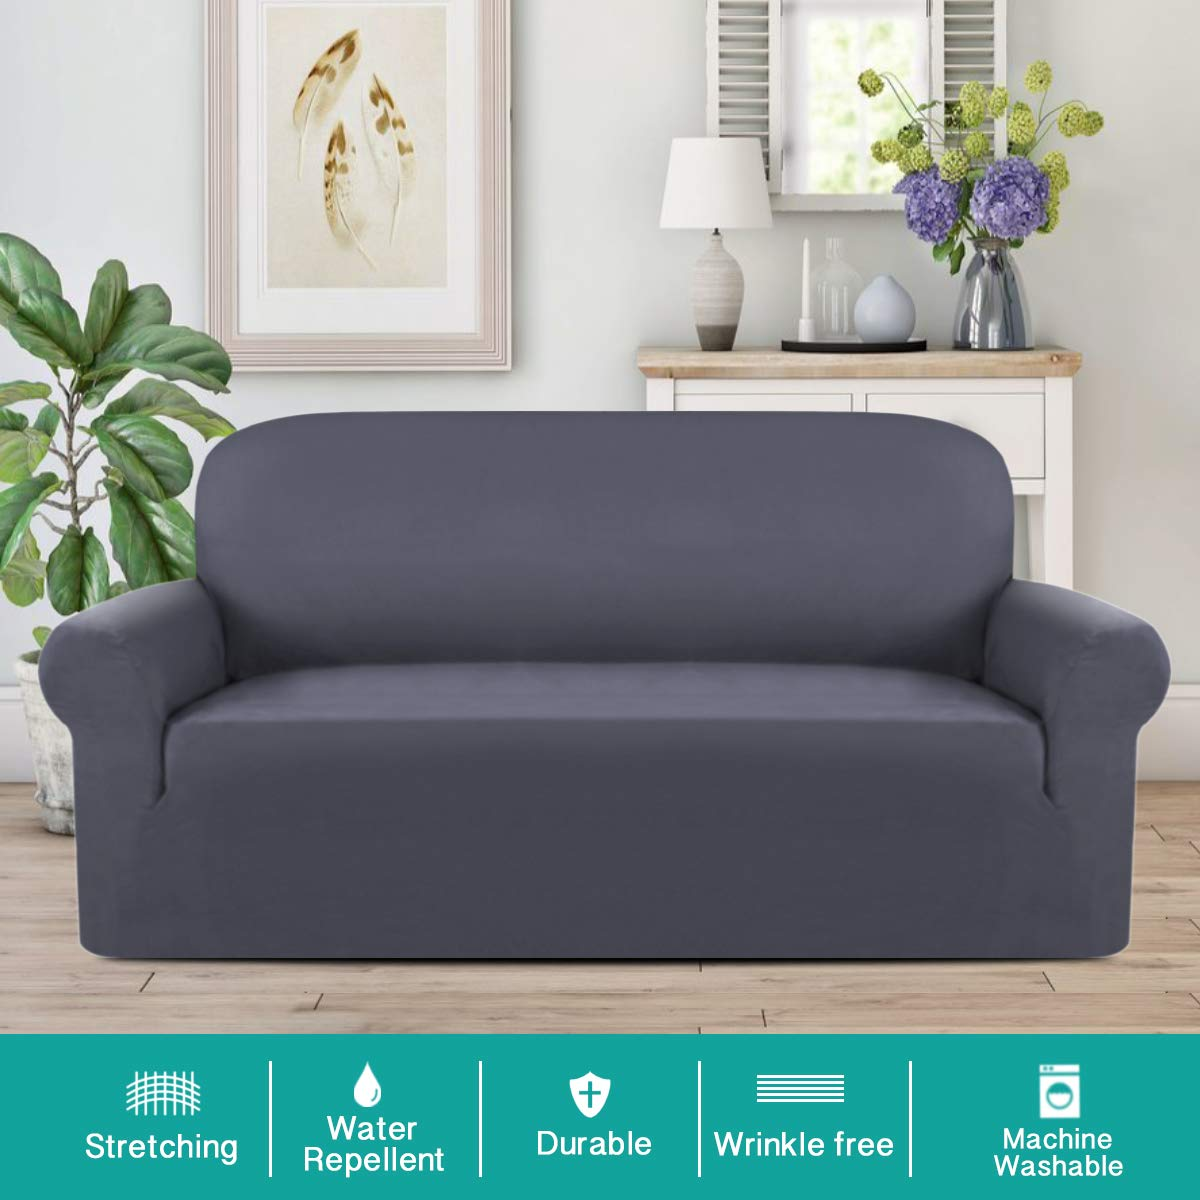 Astounding Turquoize Suede Sofa Cover Grey Sofa Slipcover Water Repellent Sofa Lounge Covers For 3 Seat Sofa Cover Suede Slipcover Loveseat Cover Stretch Velvet Pabps2019 Chair Design Images Pabps2019Com